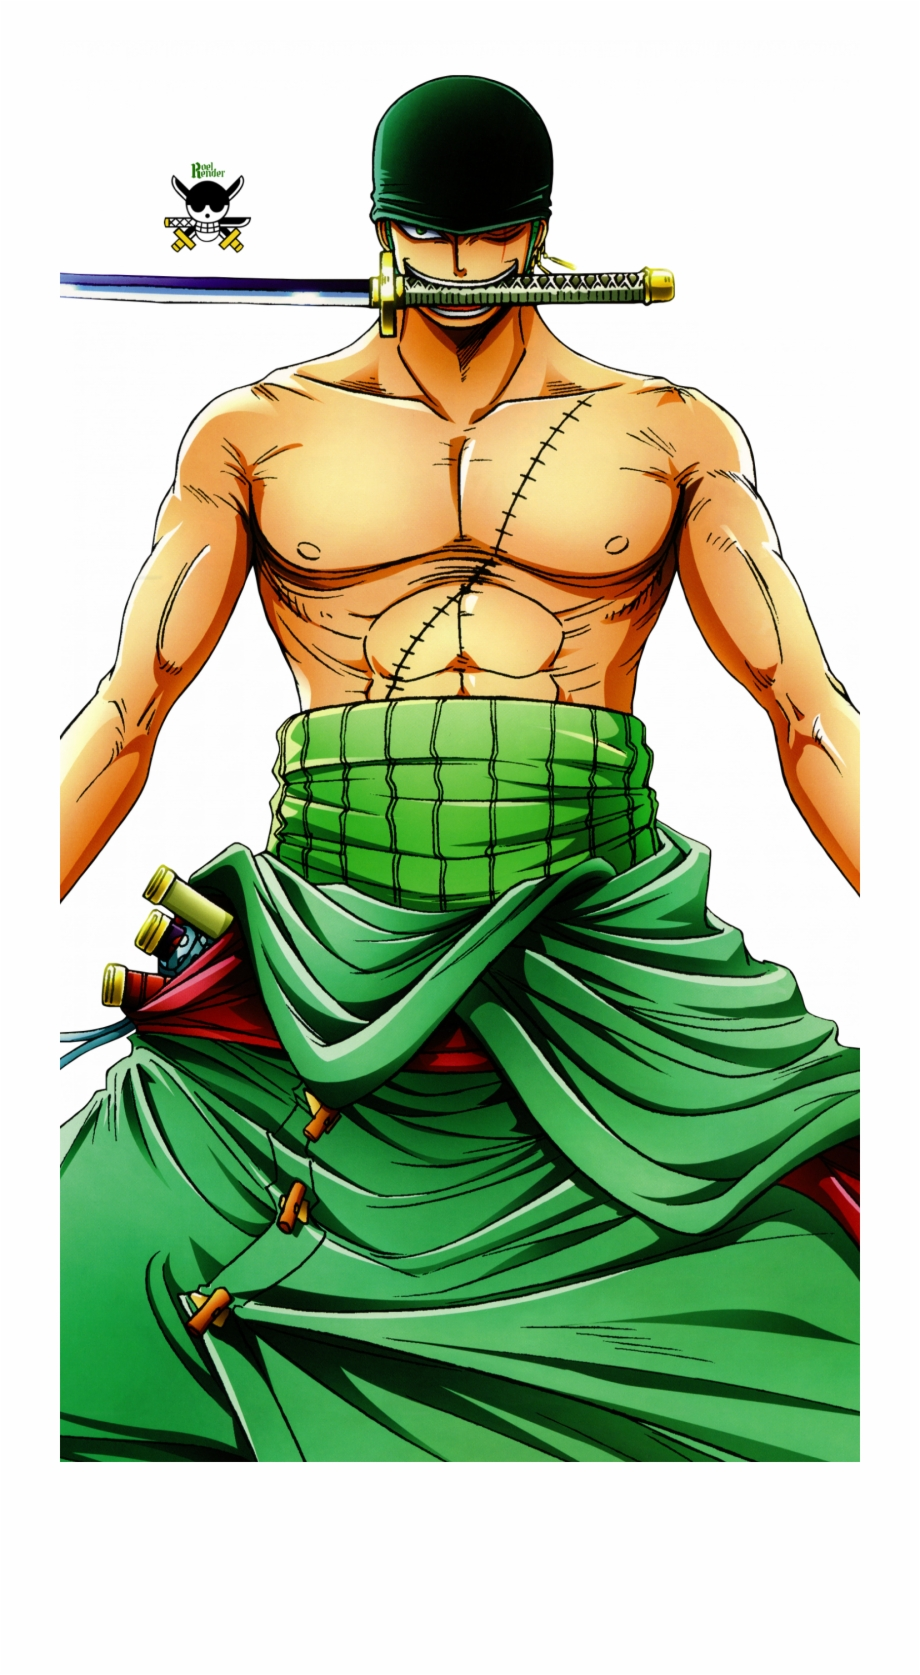 Zoro Hd : Roronoa, Wallpaper, Animation, Wallpapers, Swords, Transparent, Download, #5183898, Vippng